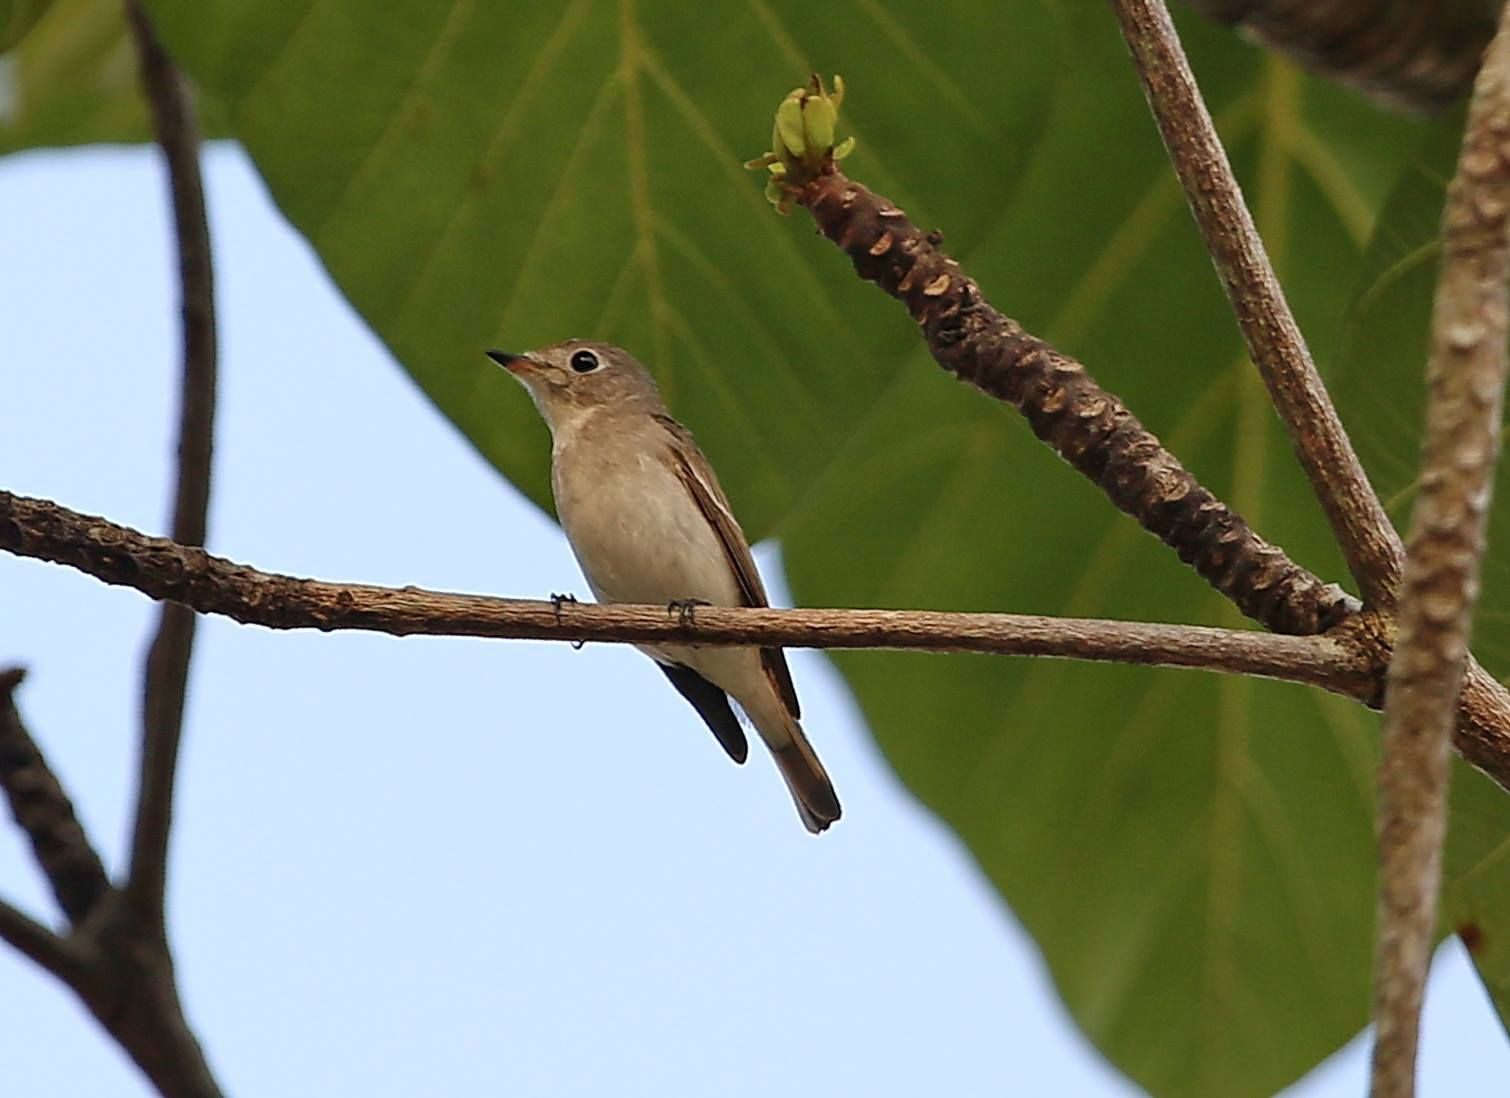 寬嘴鶲 Asian Brown Flycatcher (Muscicapa dauurica) ※過境鳥